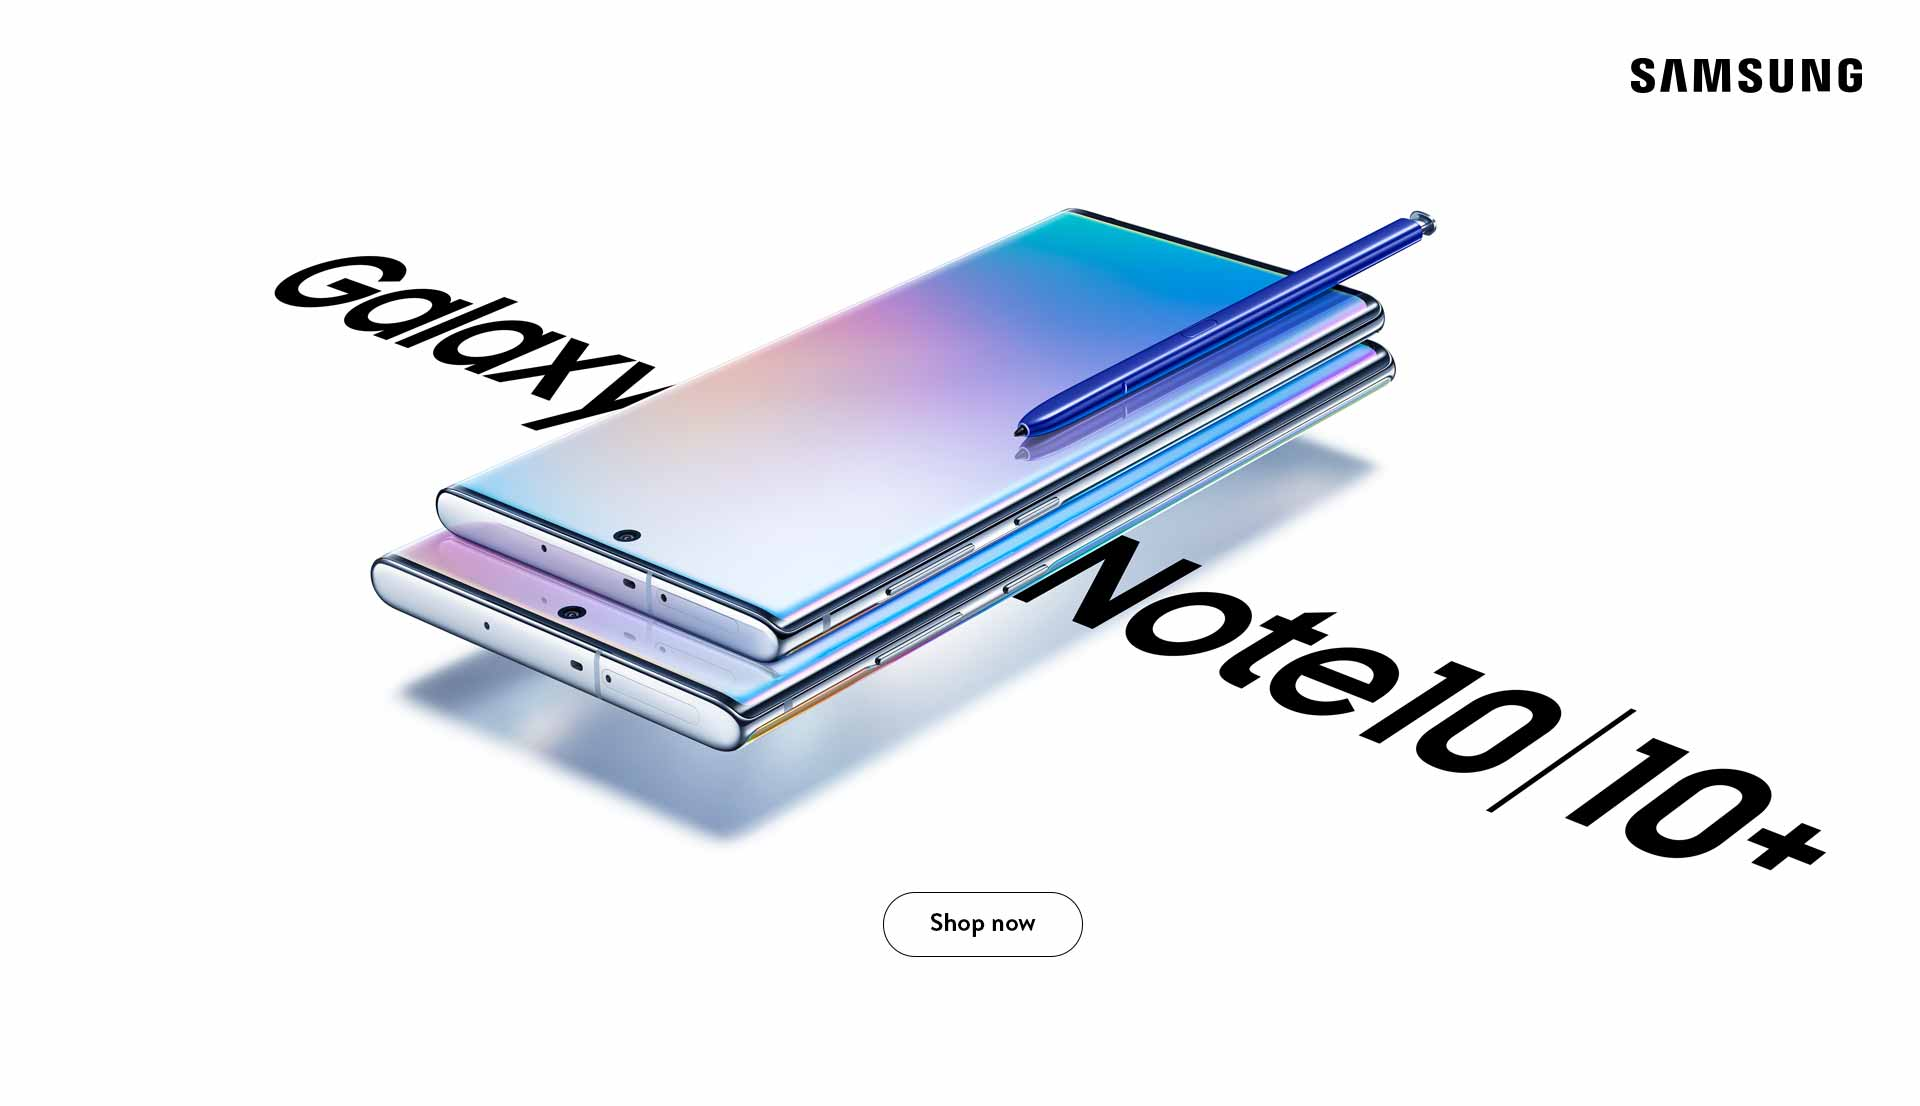 The new Galaxy Note10 & Note 10+. Shop Now.